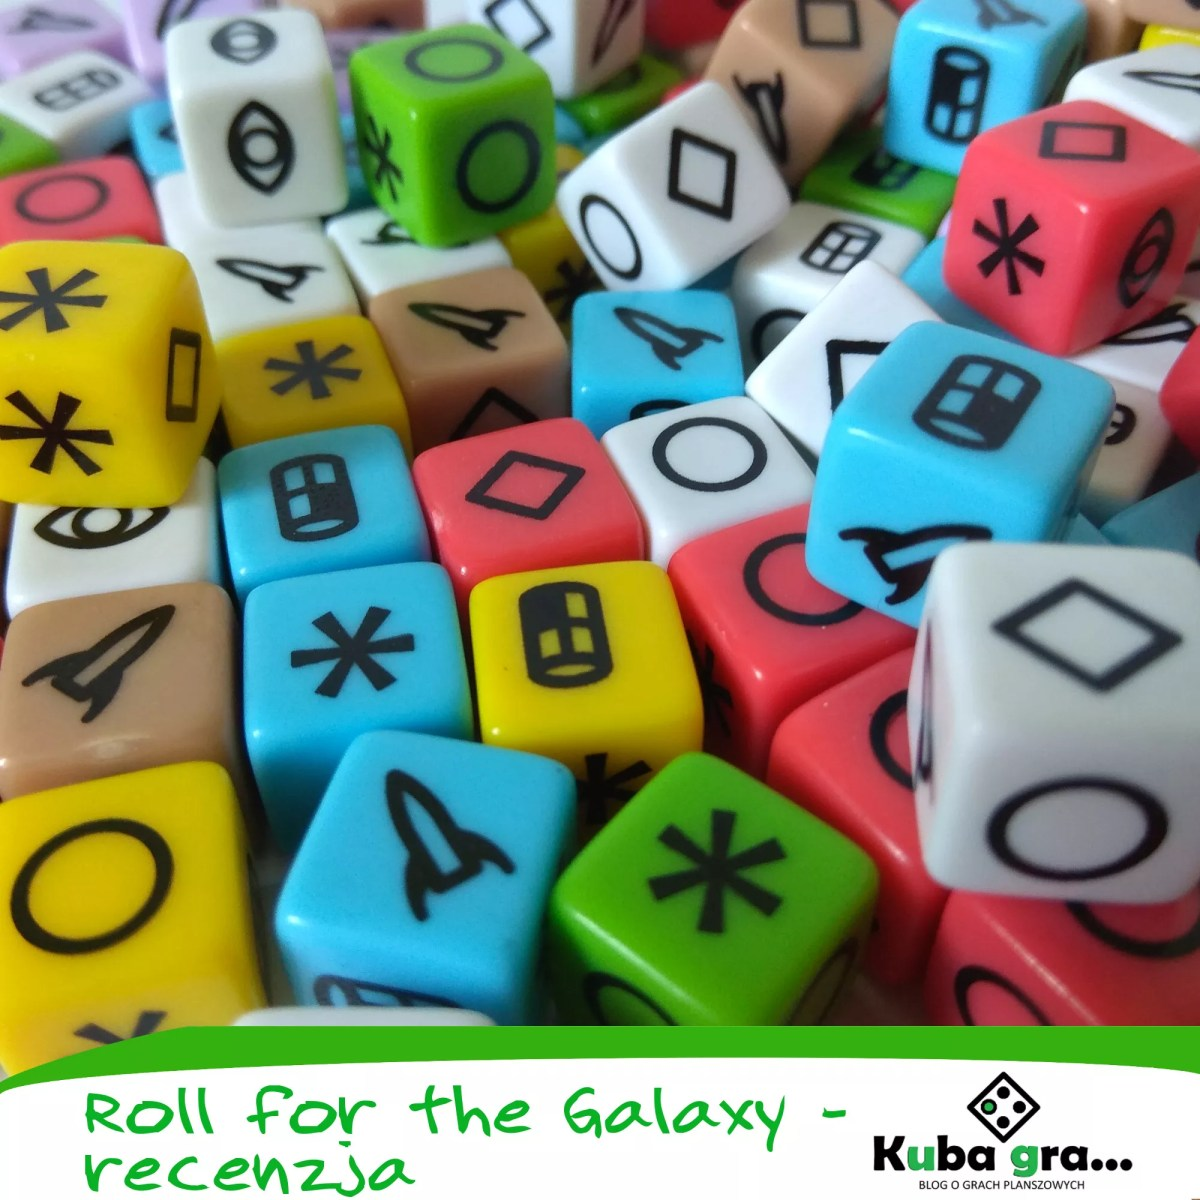 Roll for the Galaxy - recenzja